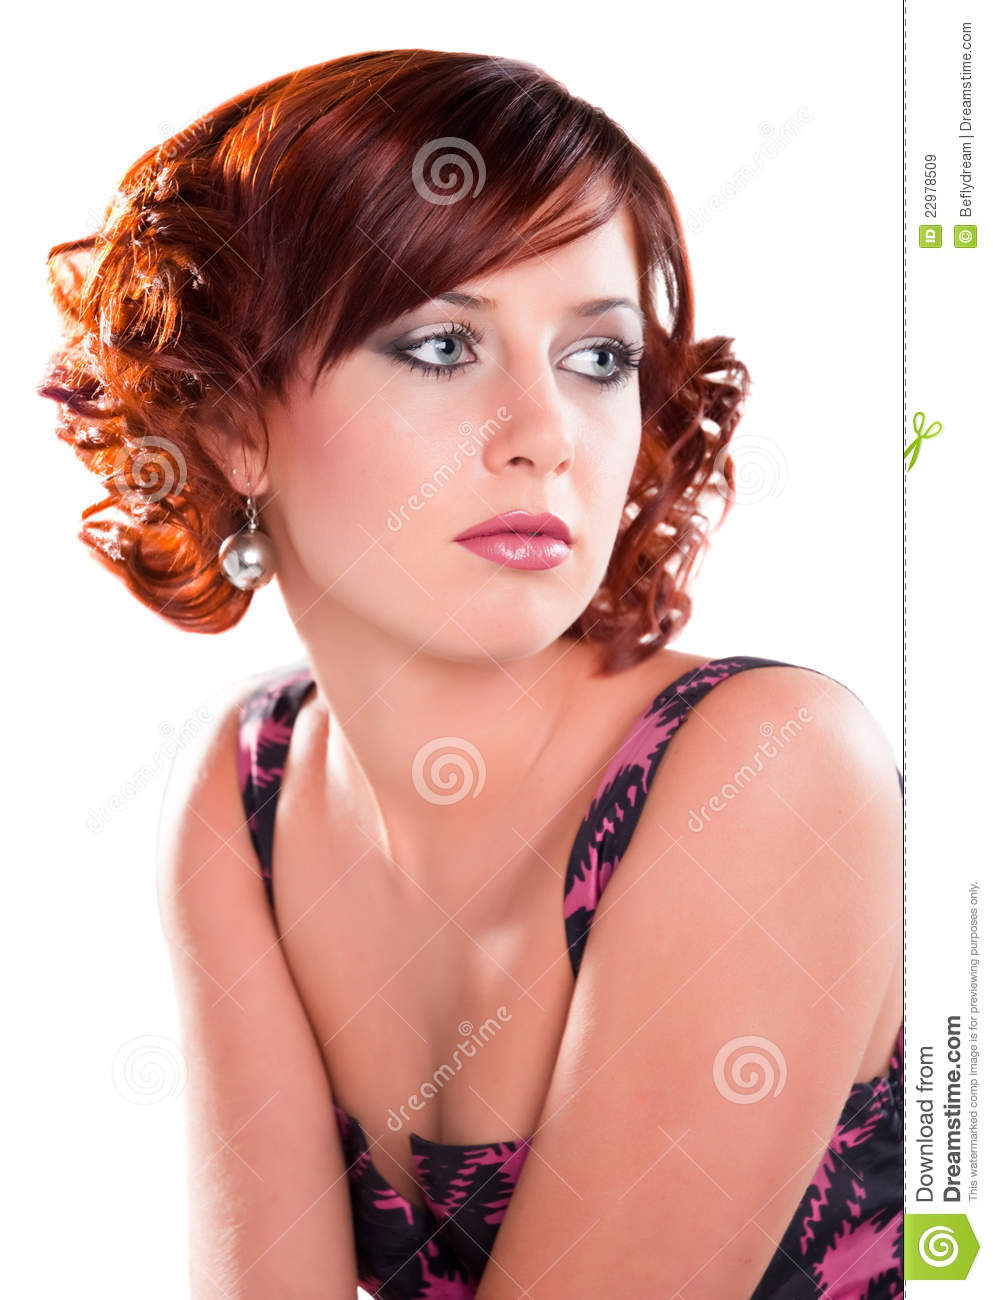 red headed girl dating